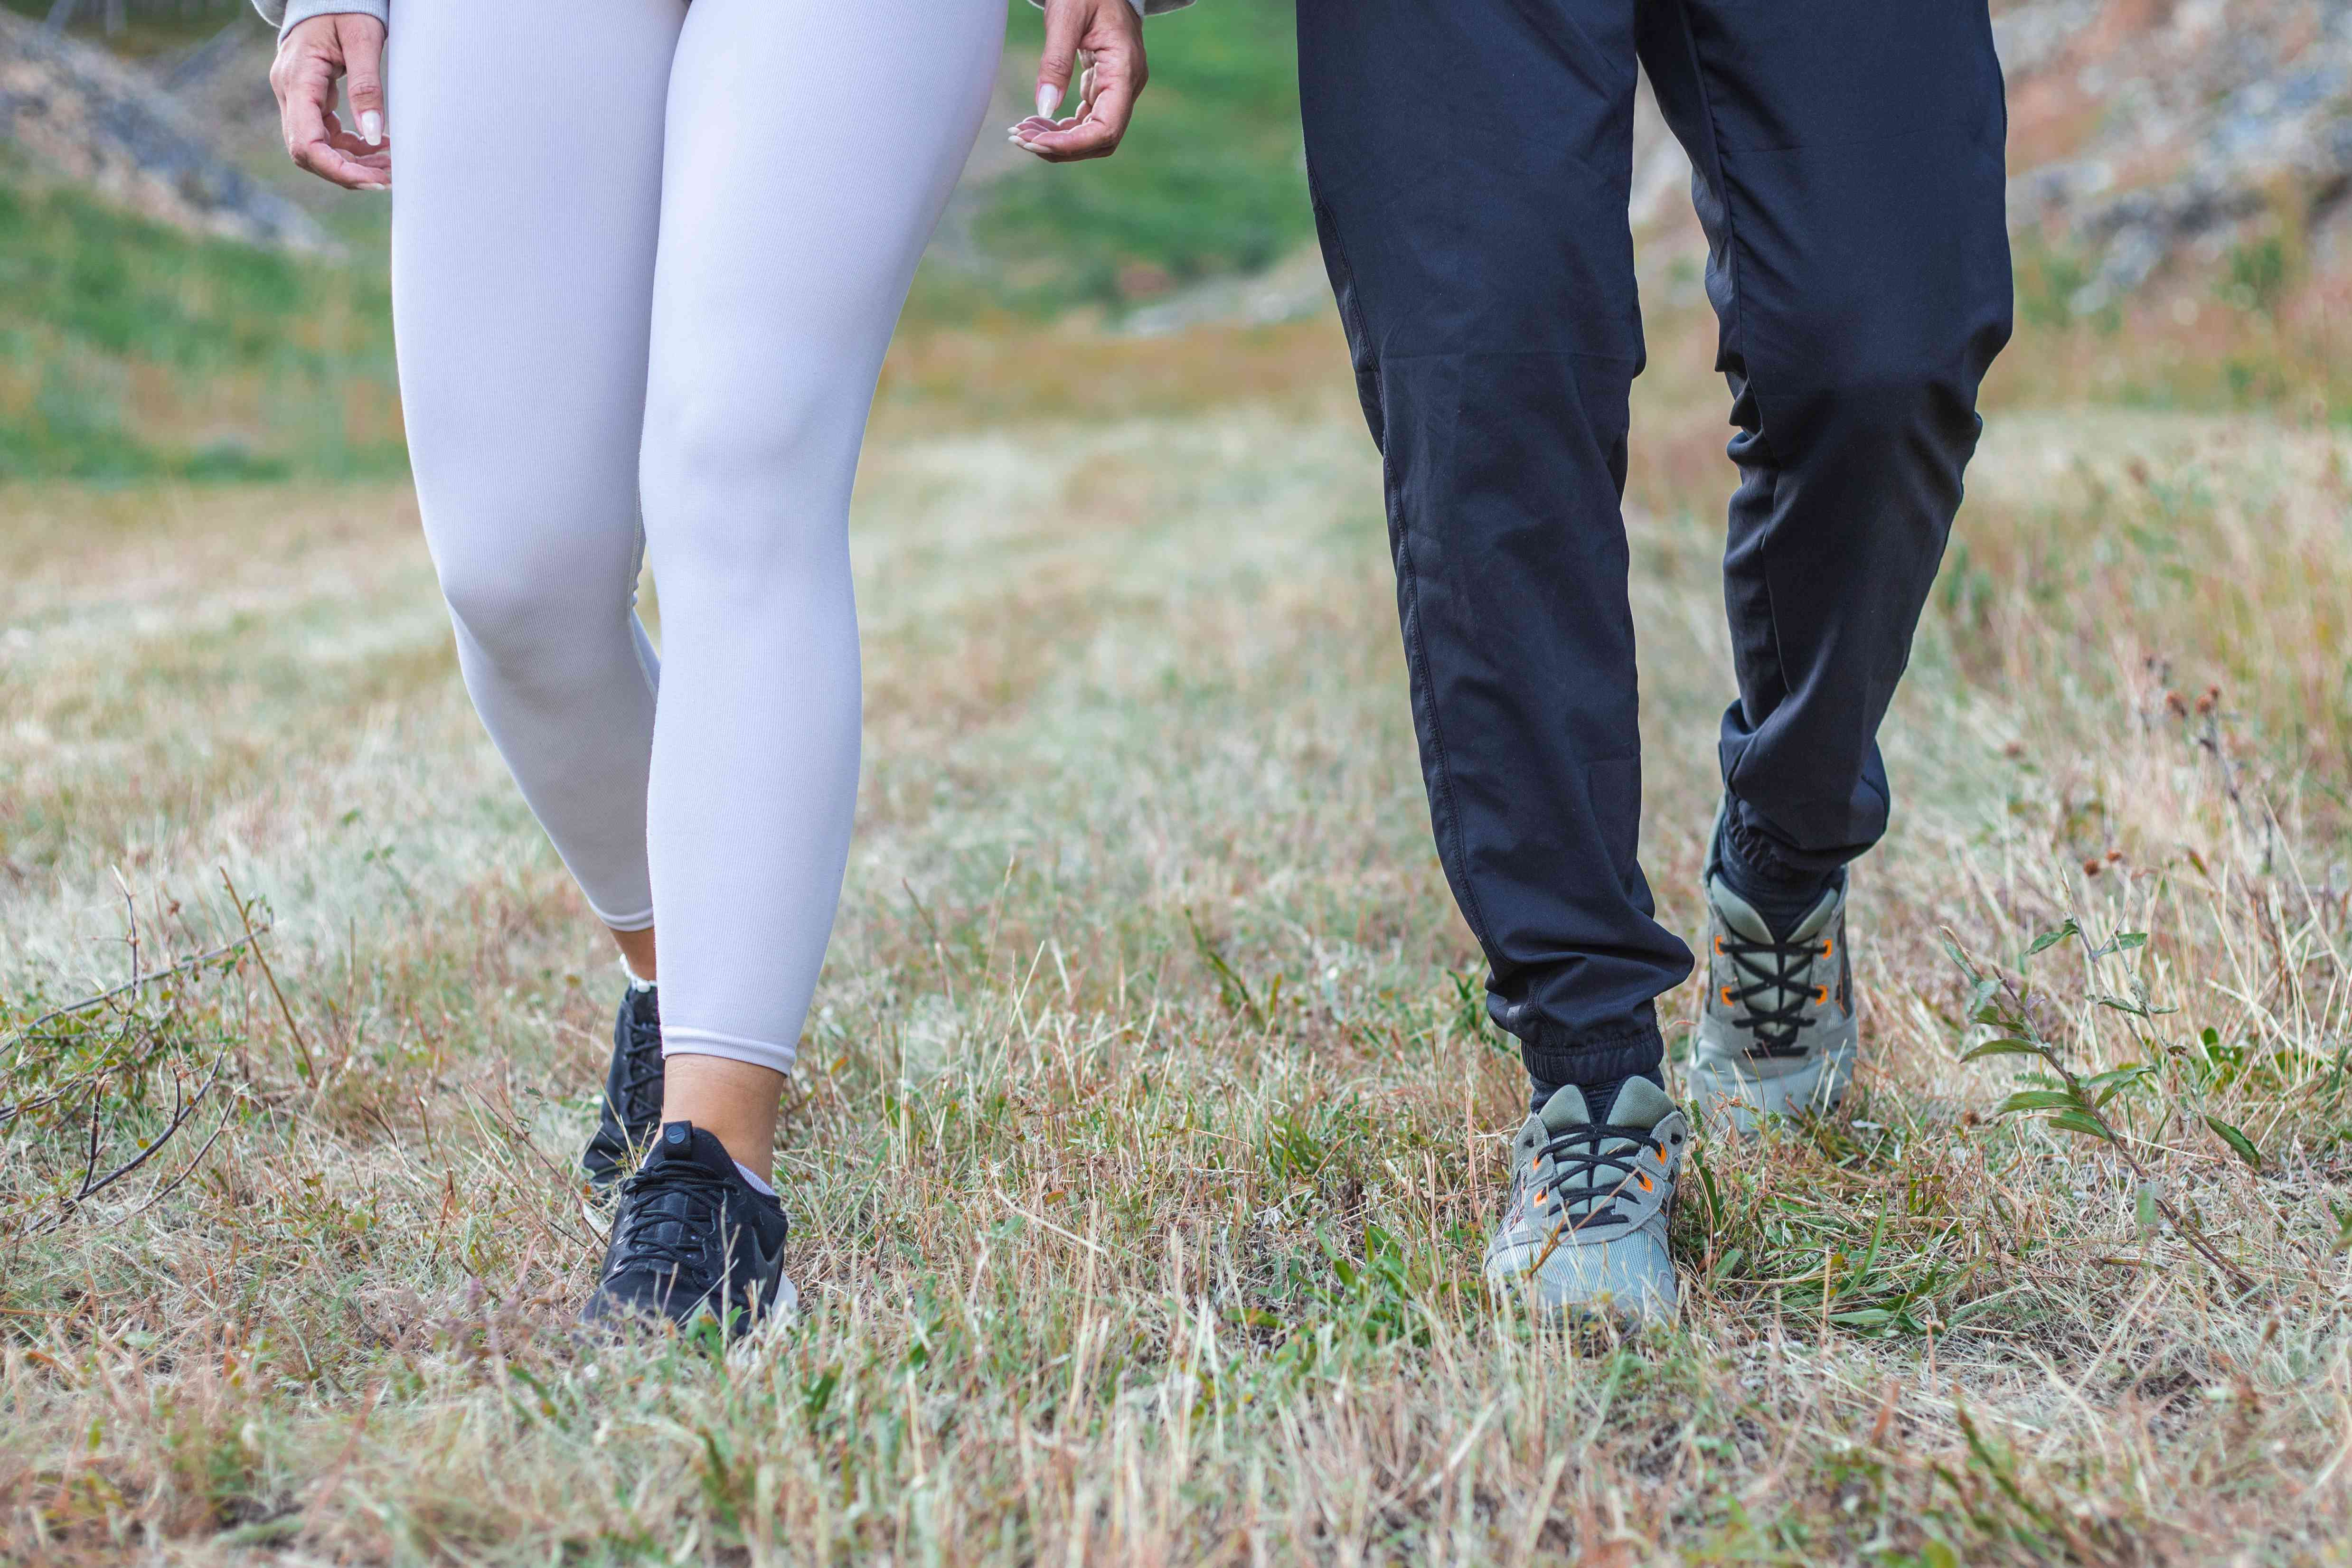 woman and man in exercise clothes walk on grassy trail with hill in background